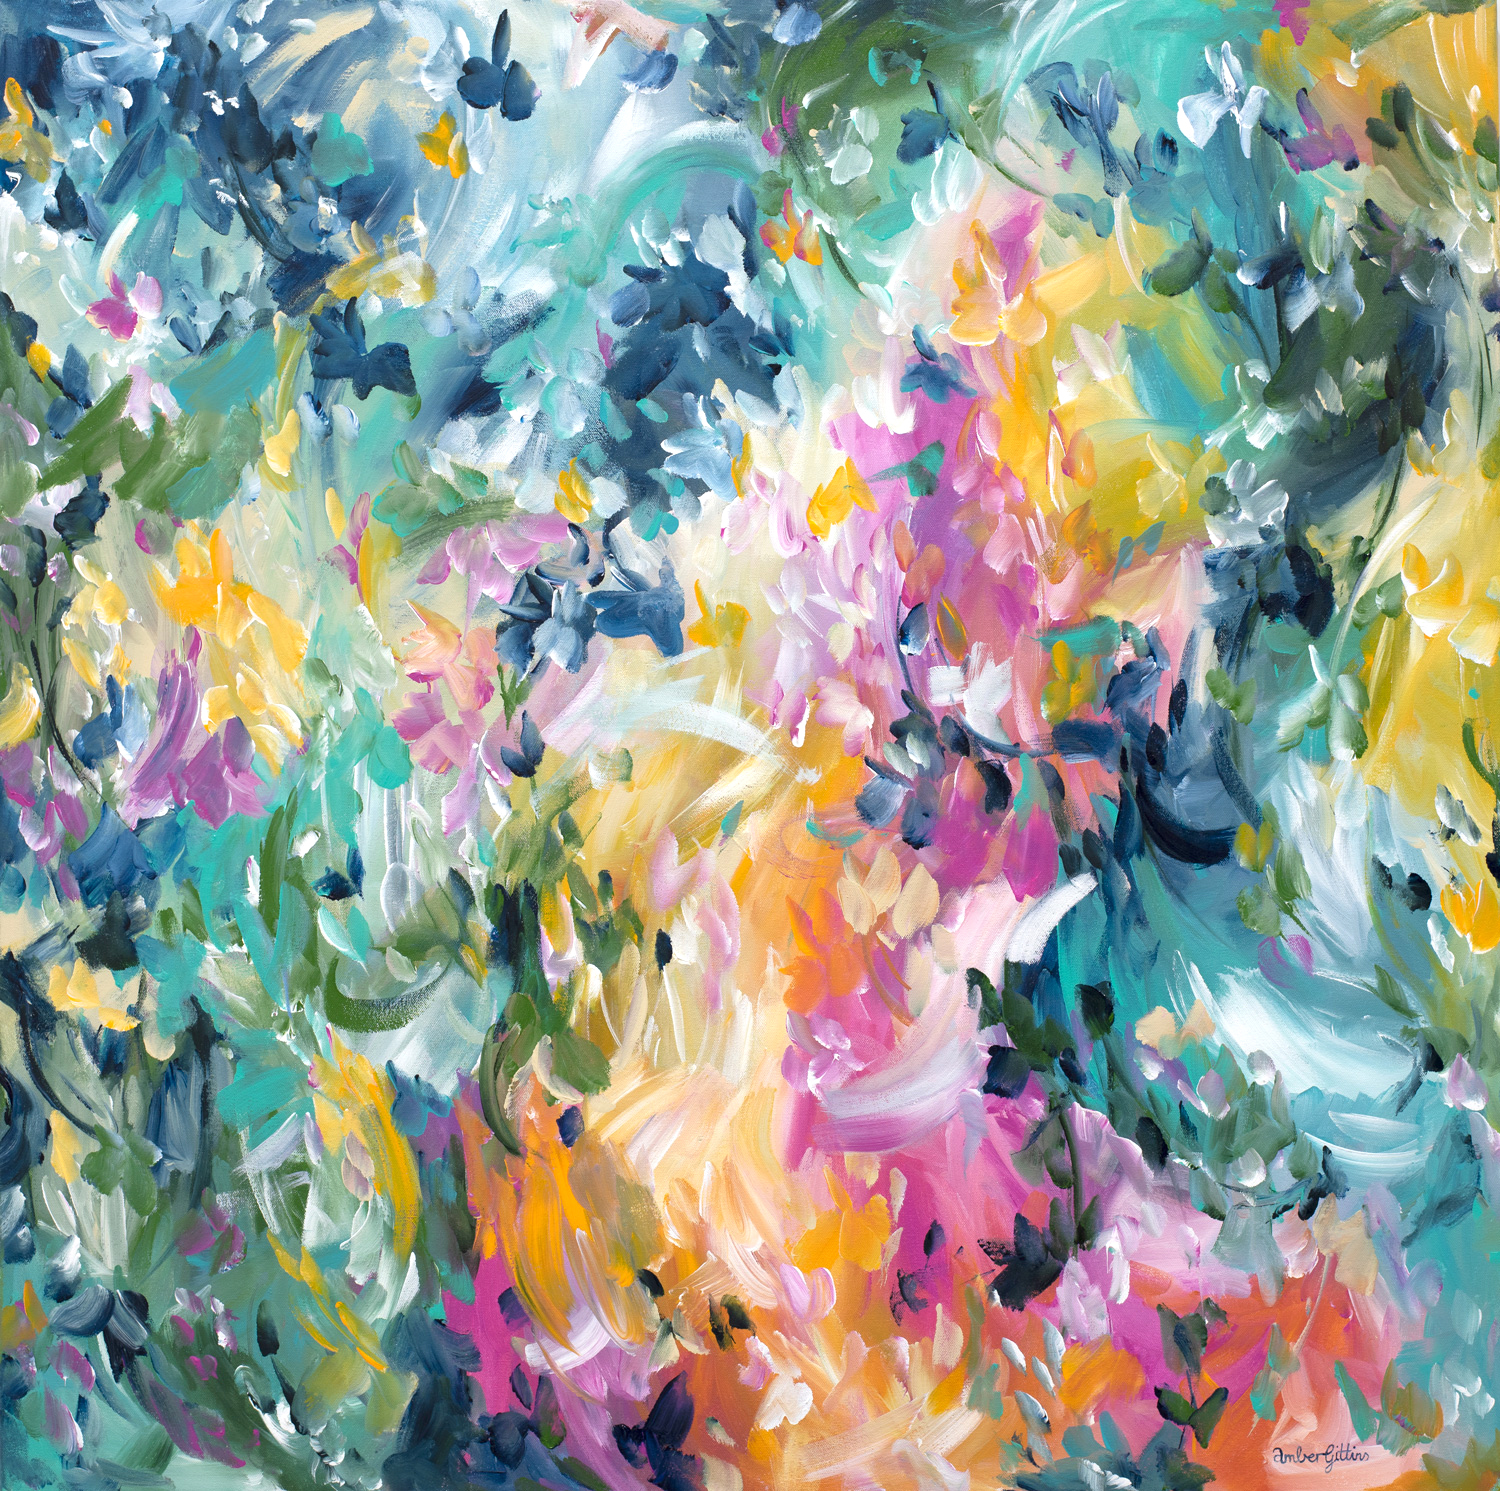 Fearless Love Abstract Painting By Amber Gittins